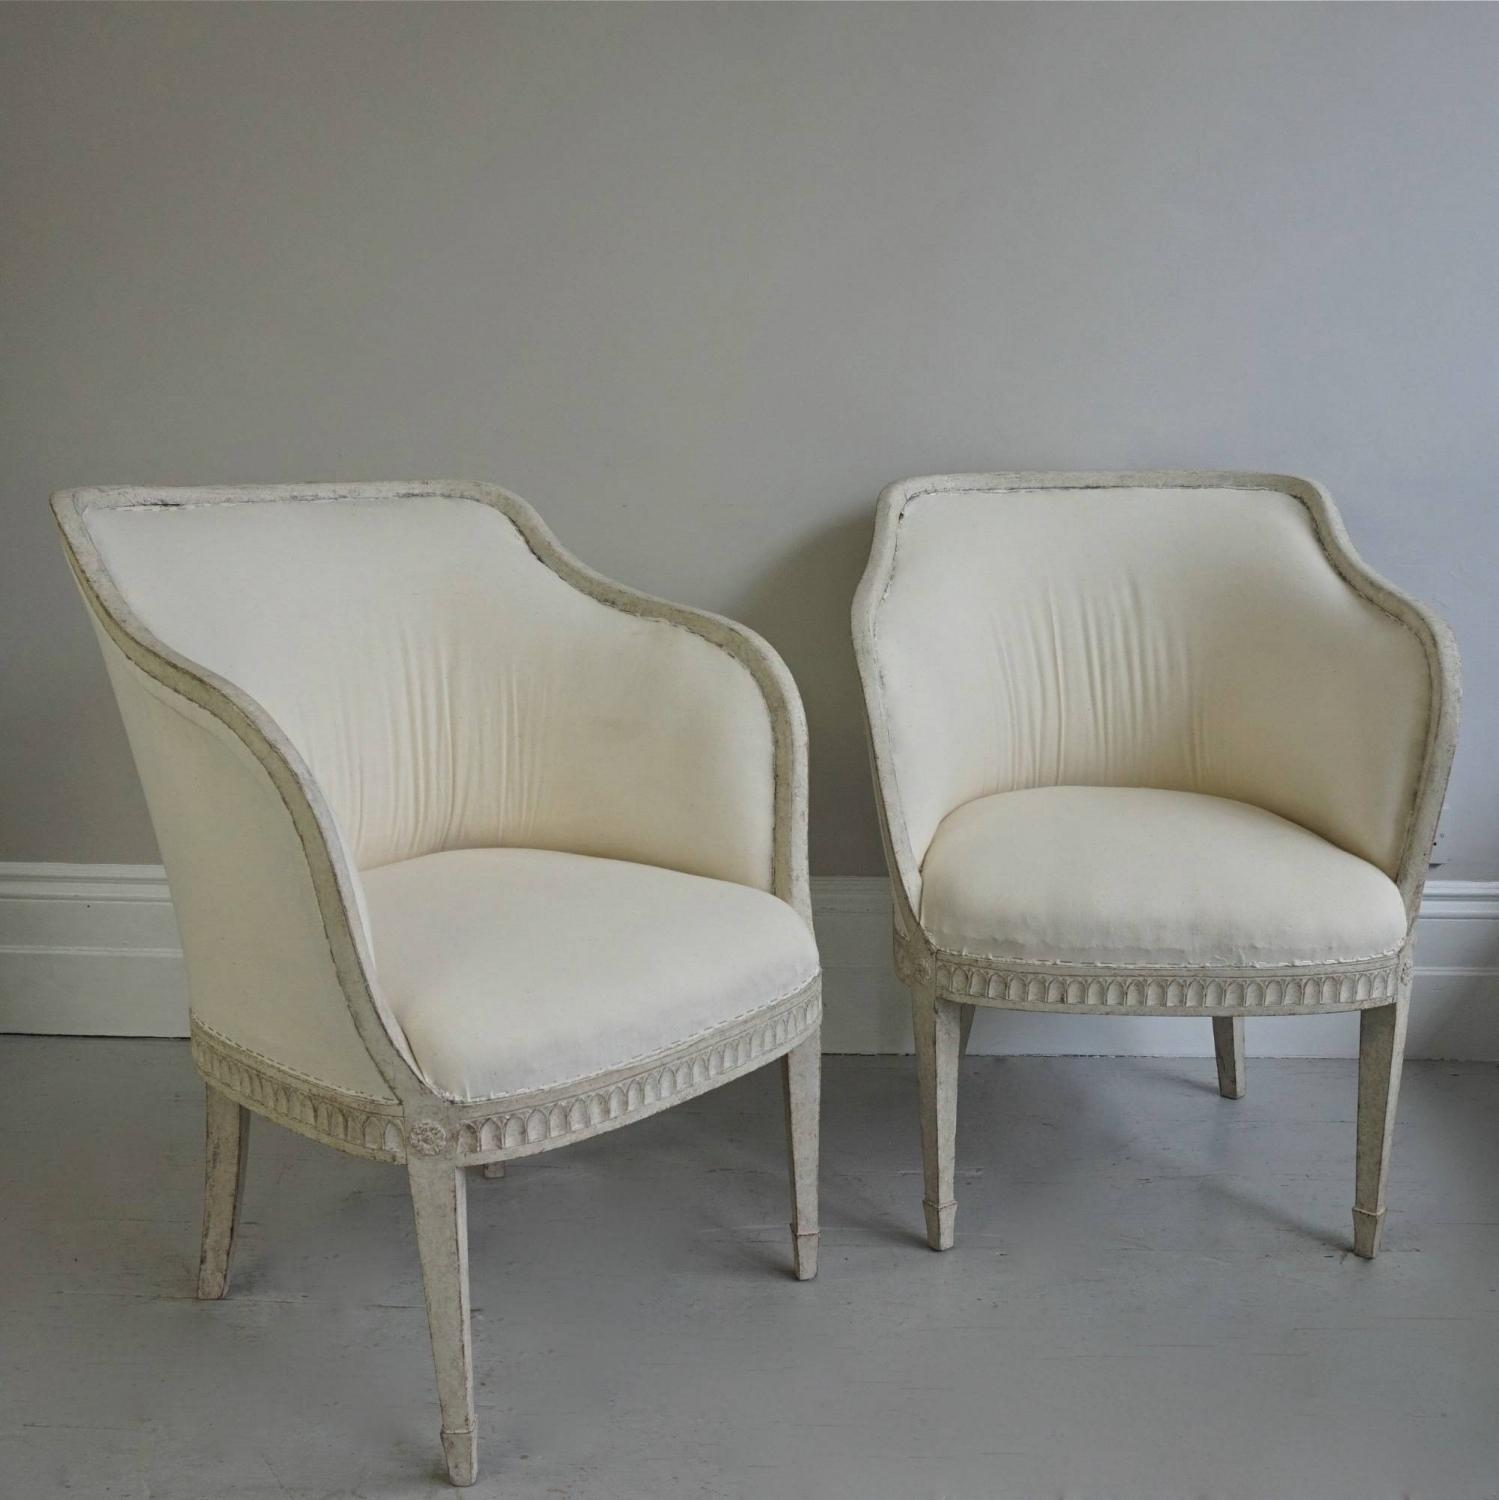 PAIR OF RICHLY CARVED SWEDISH GUSTAVIAN STYLE